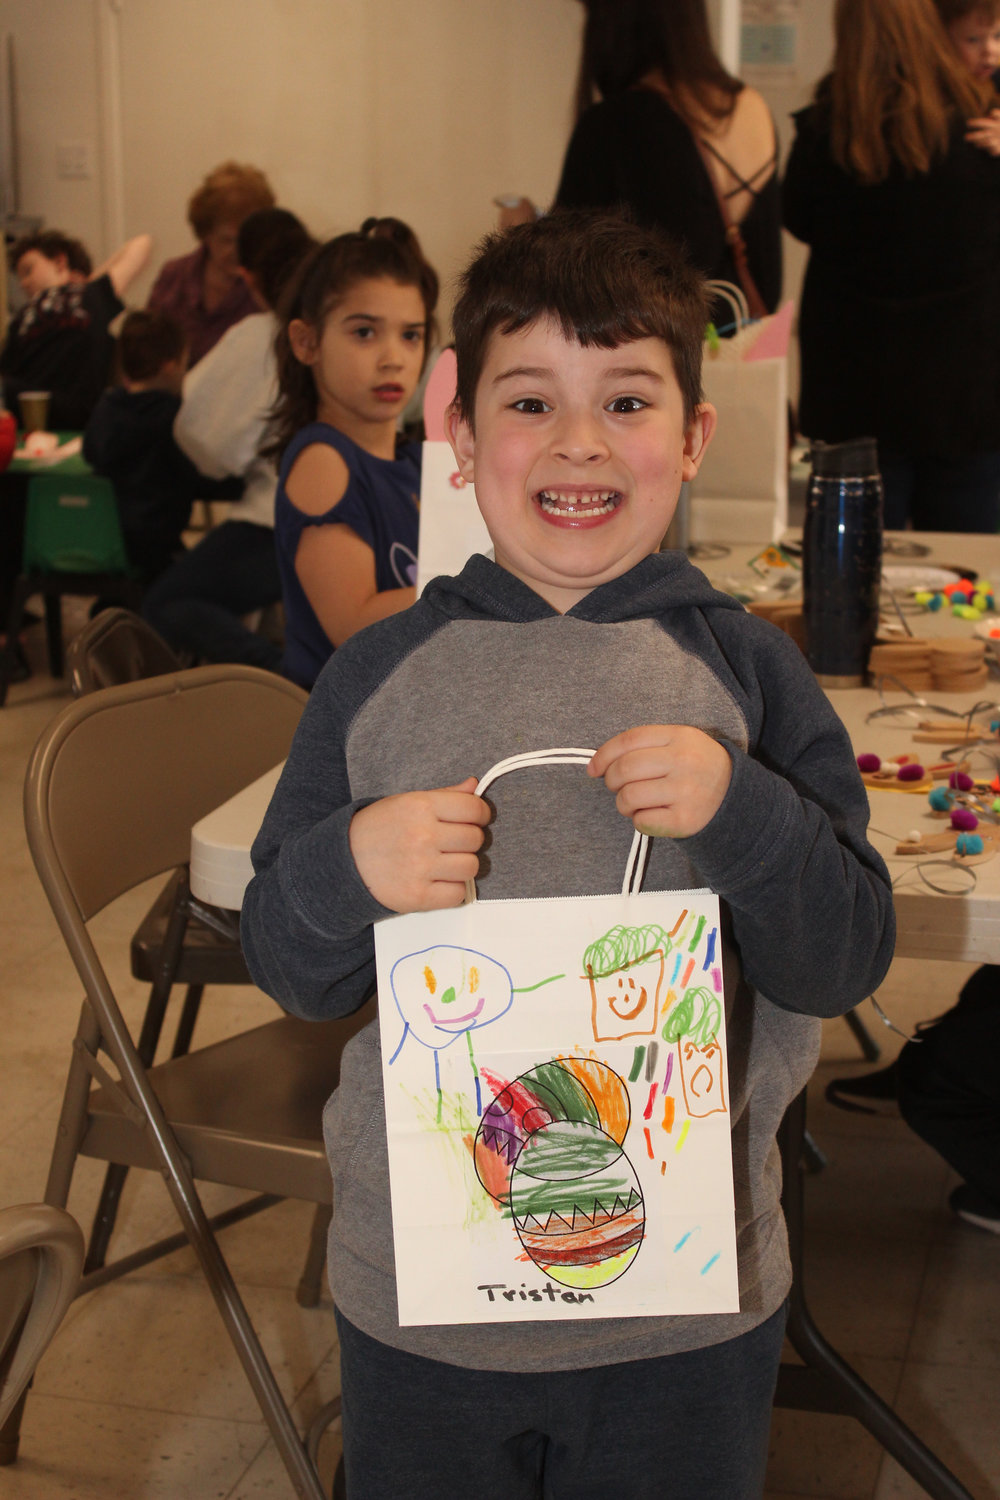 Weber was excited about the Easter bag he created to collect eggs.